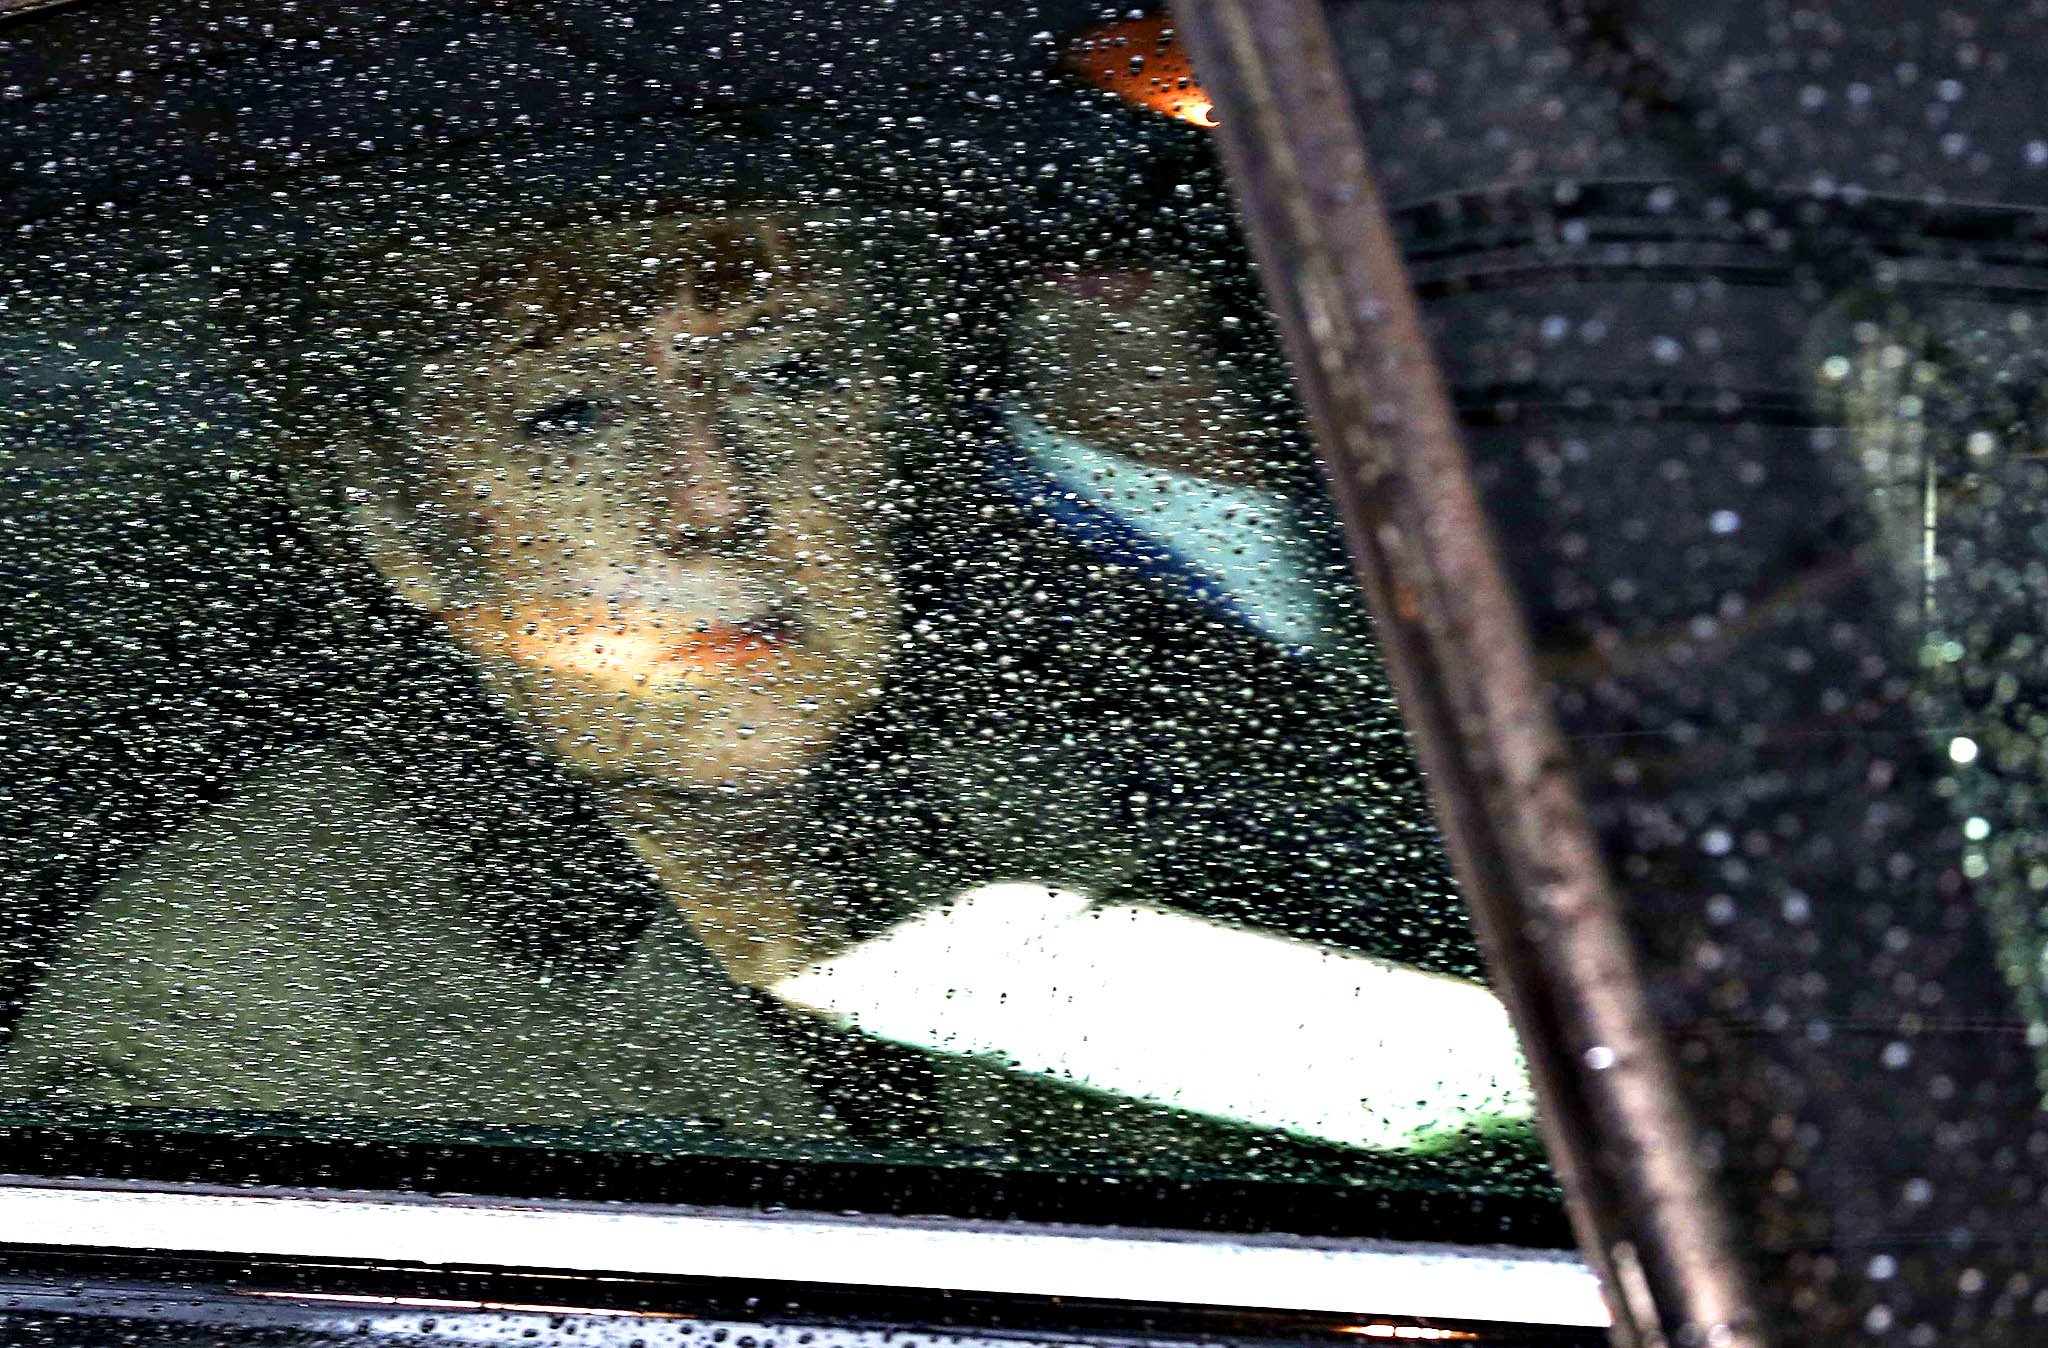 Germany's Chancellor Angela Merkel looks through her window as she arrives at a European Union leaders summit in Brussels March 21, 2014. EU leaders added 12 people to a list of those subject to travel bans and asset freezes for their part in Russia's seizure of Crimea on Thursday and begin preparations for economic sanctions if Russia expands its footprint in Ukraine.